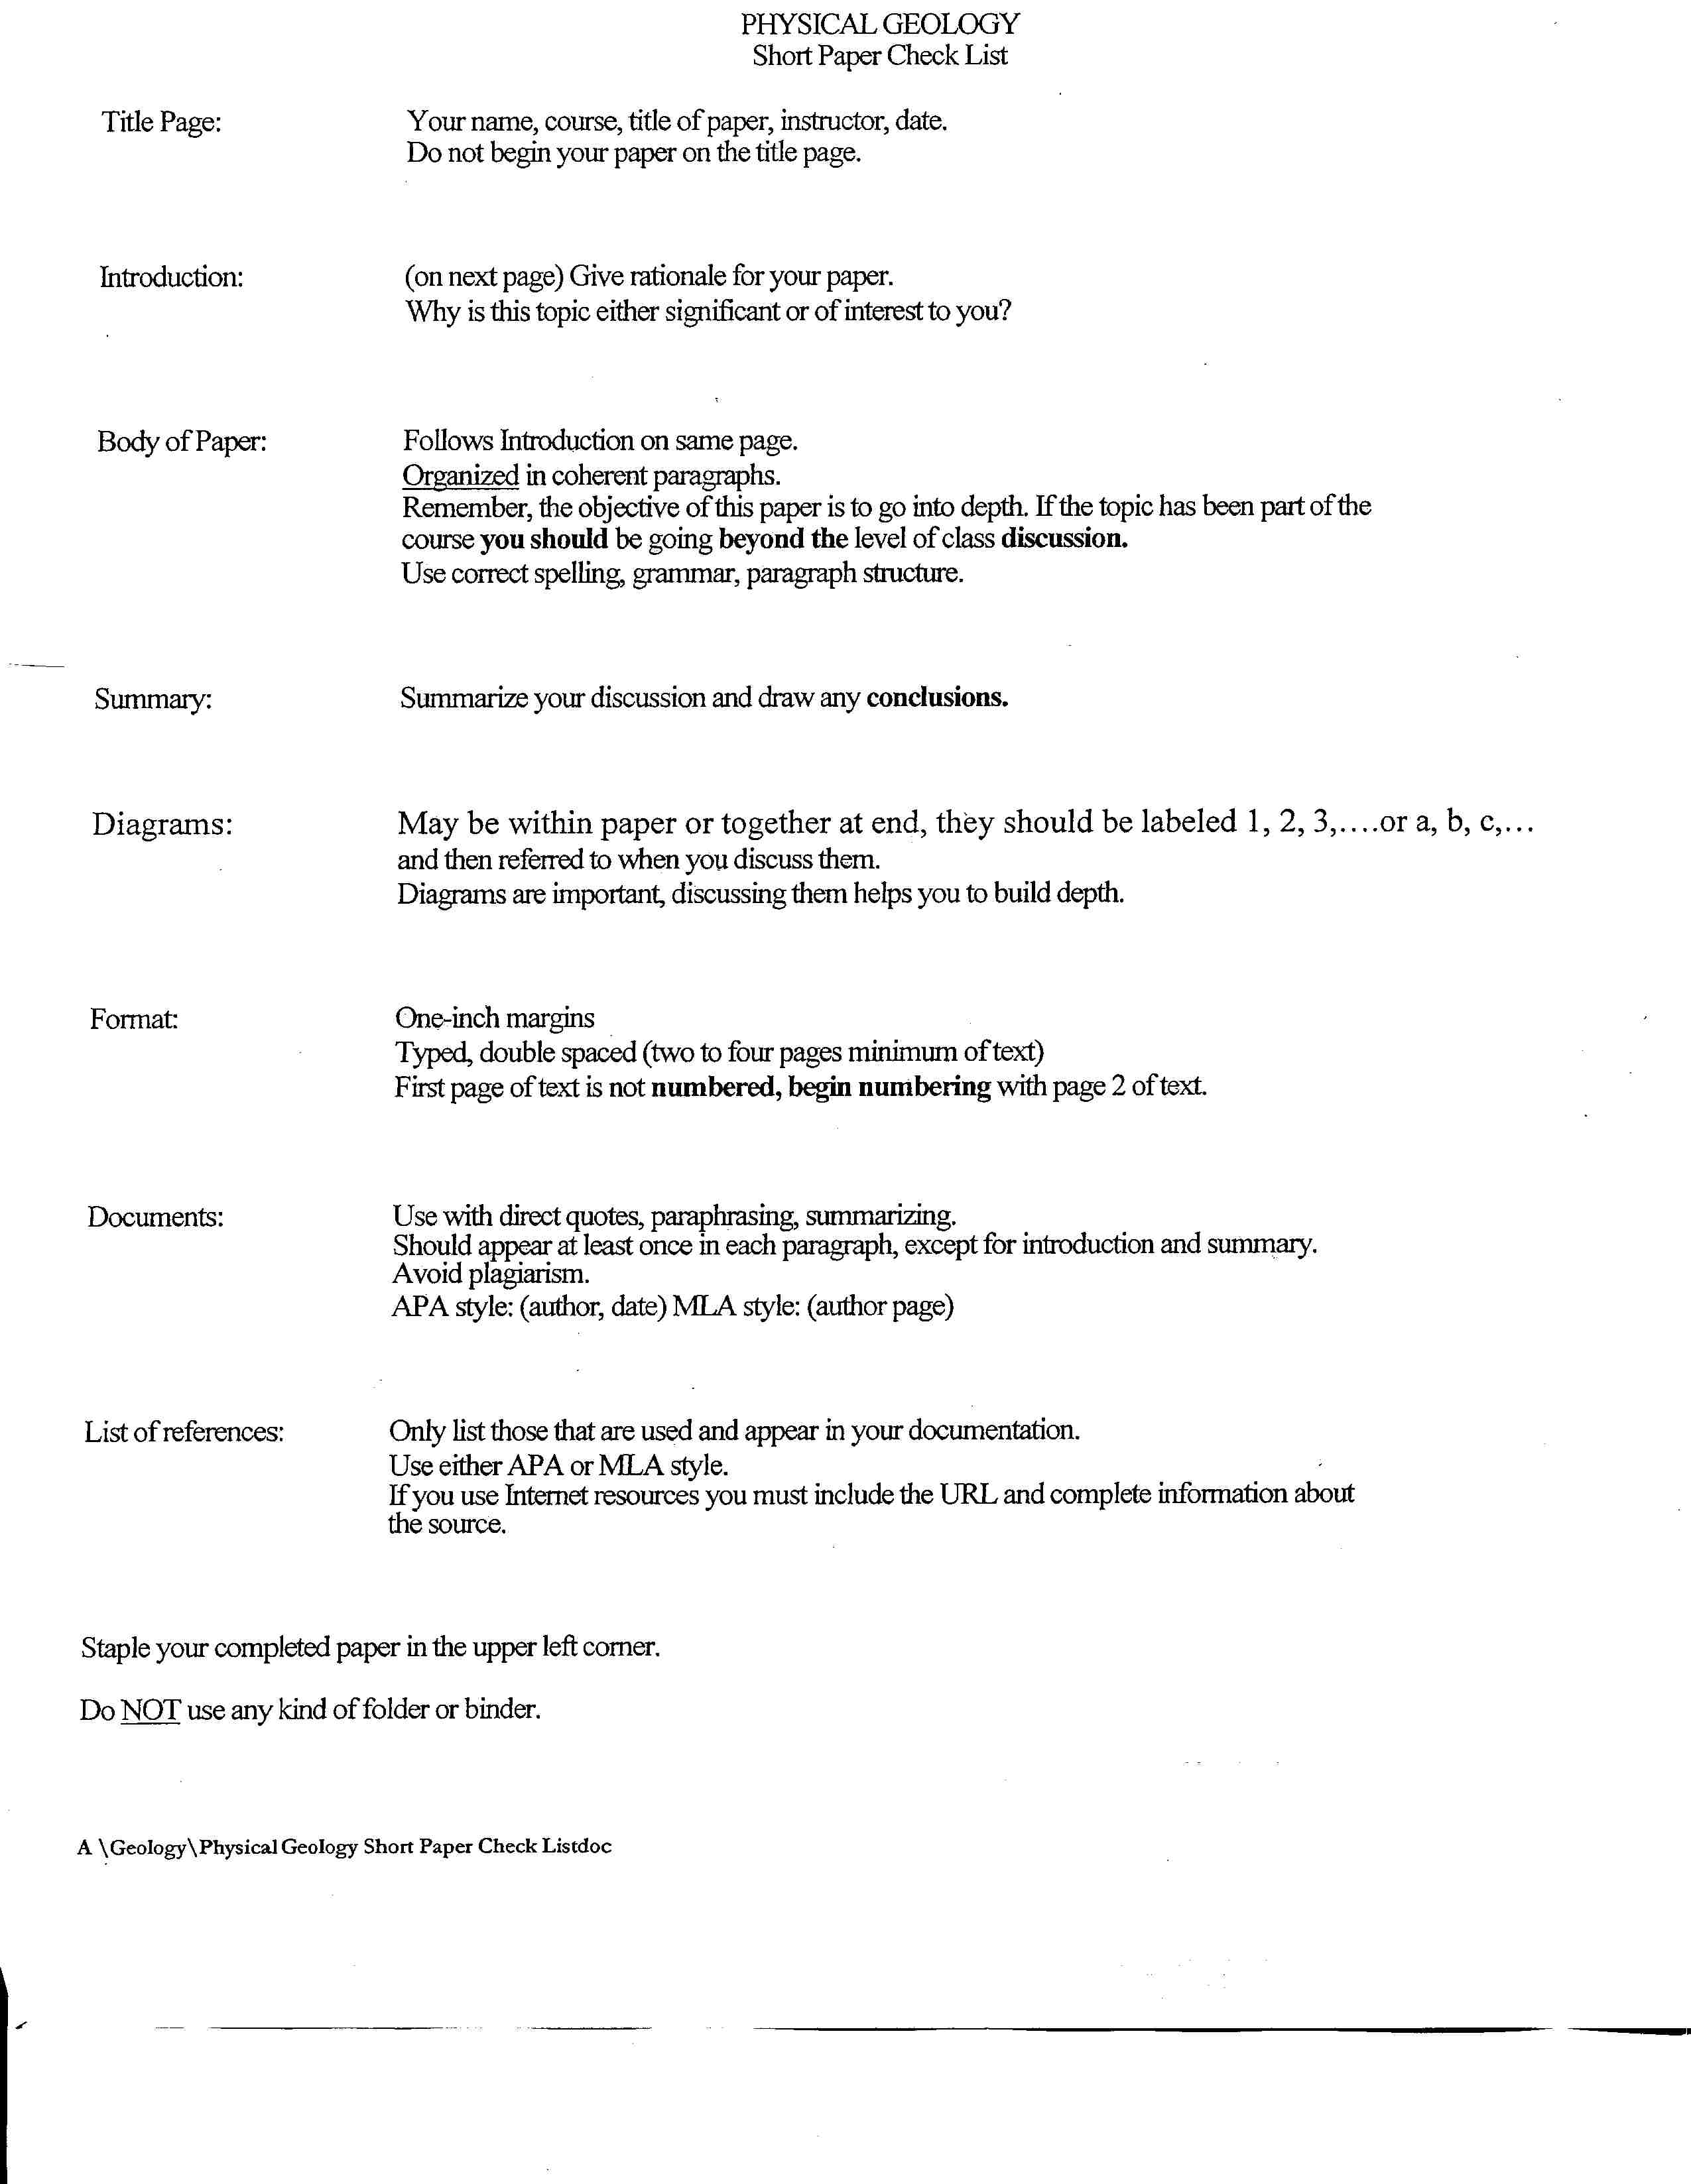 011 Research Paper Short Checklist Introductions To Papers Sensational Example Full